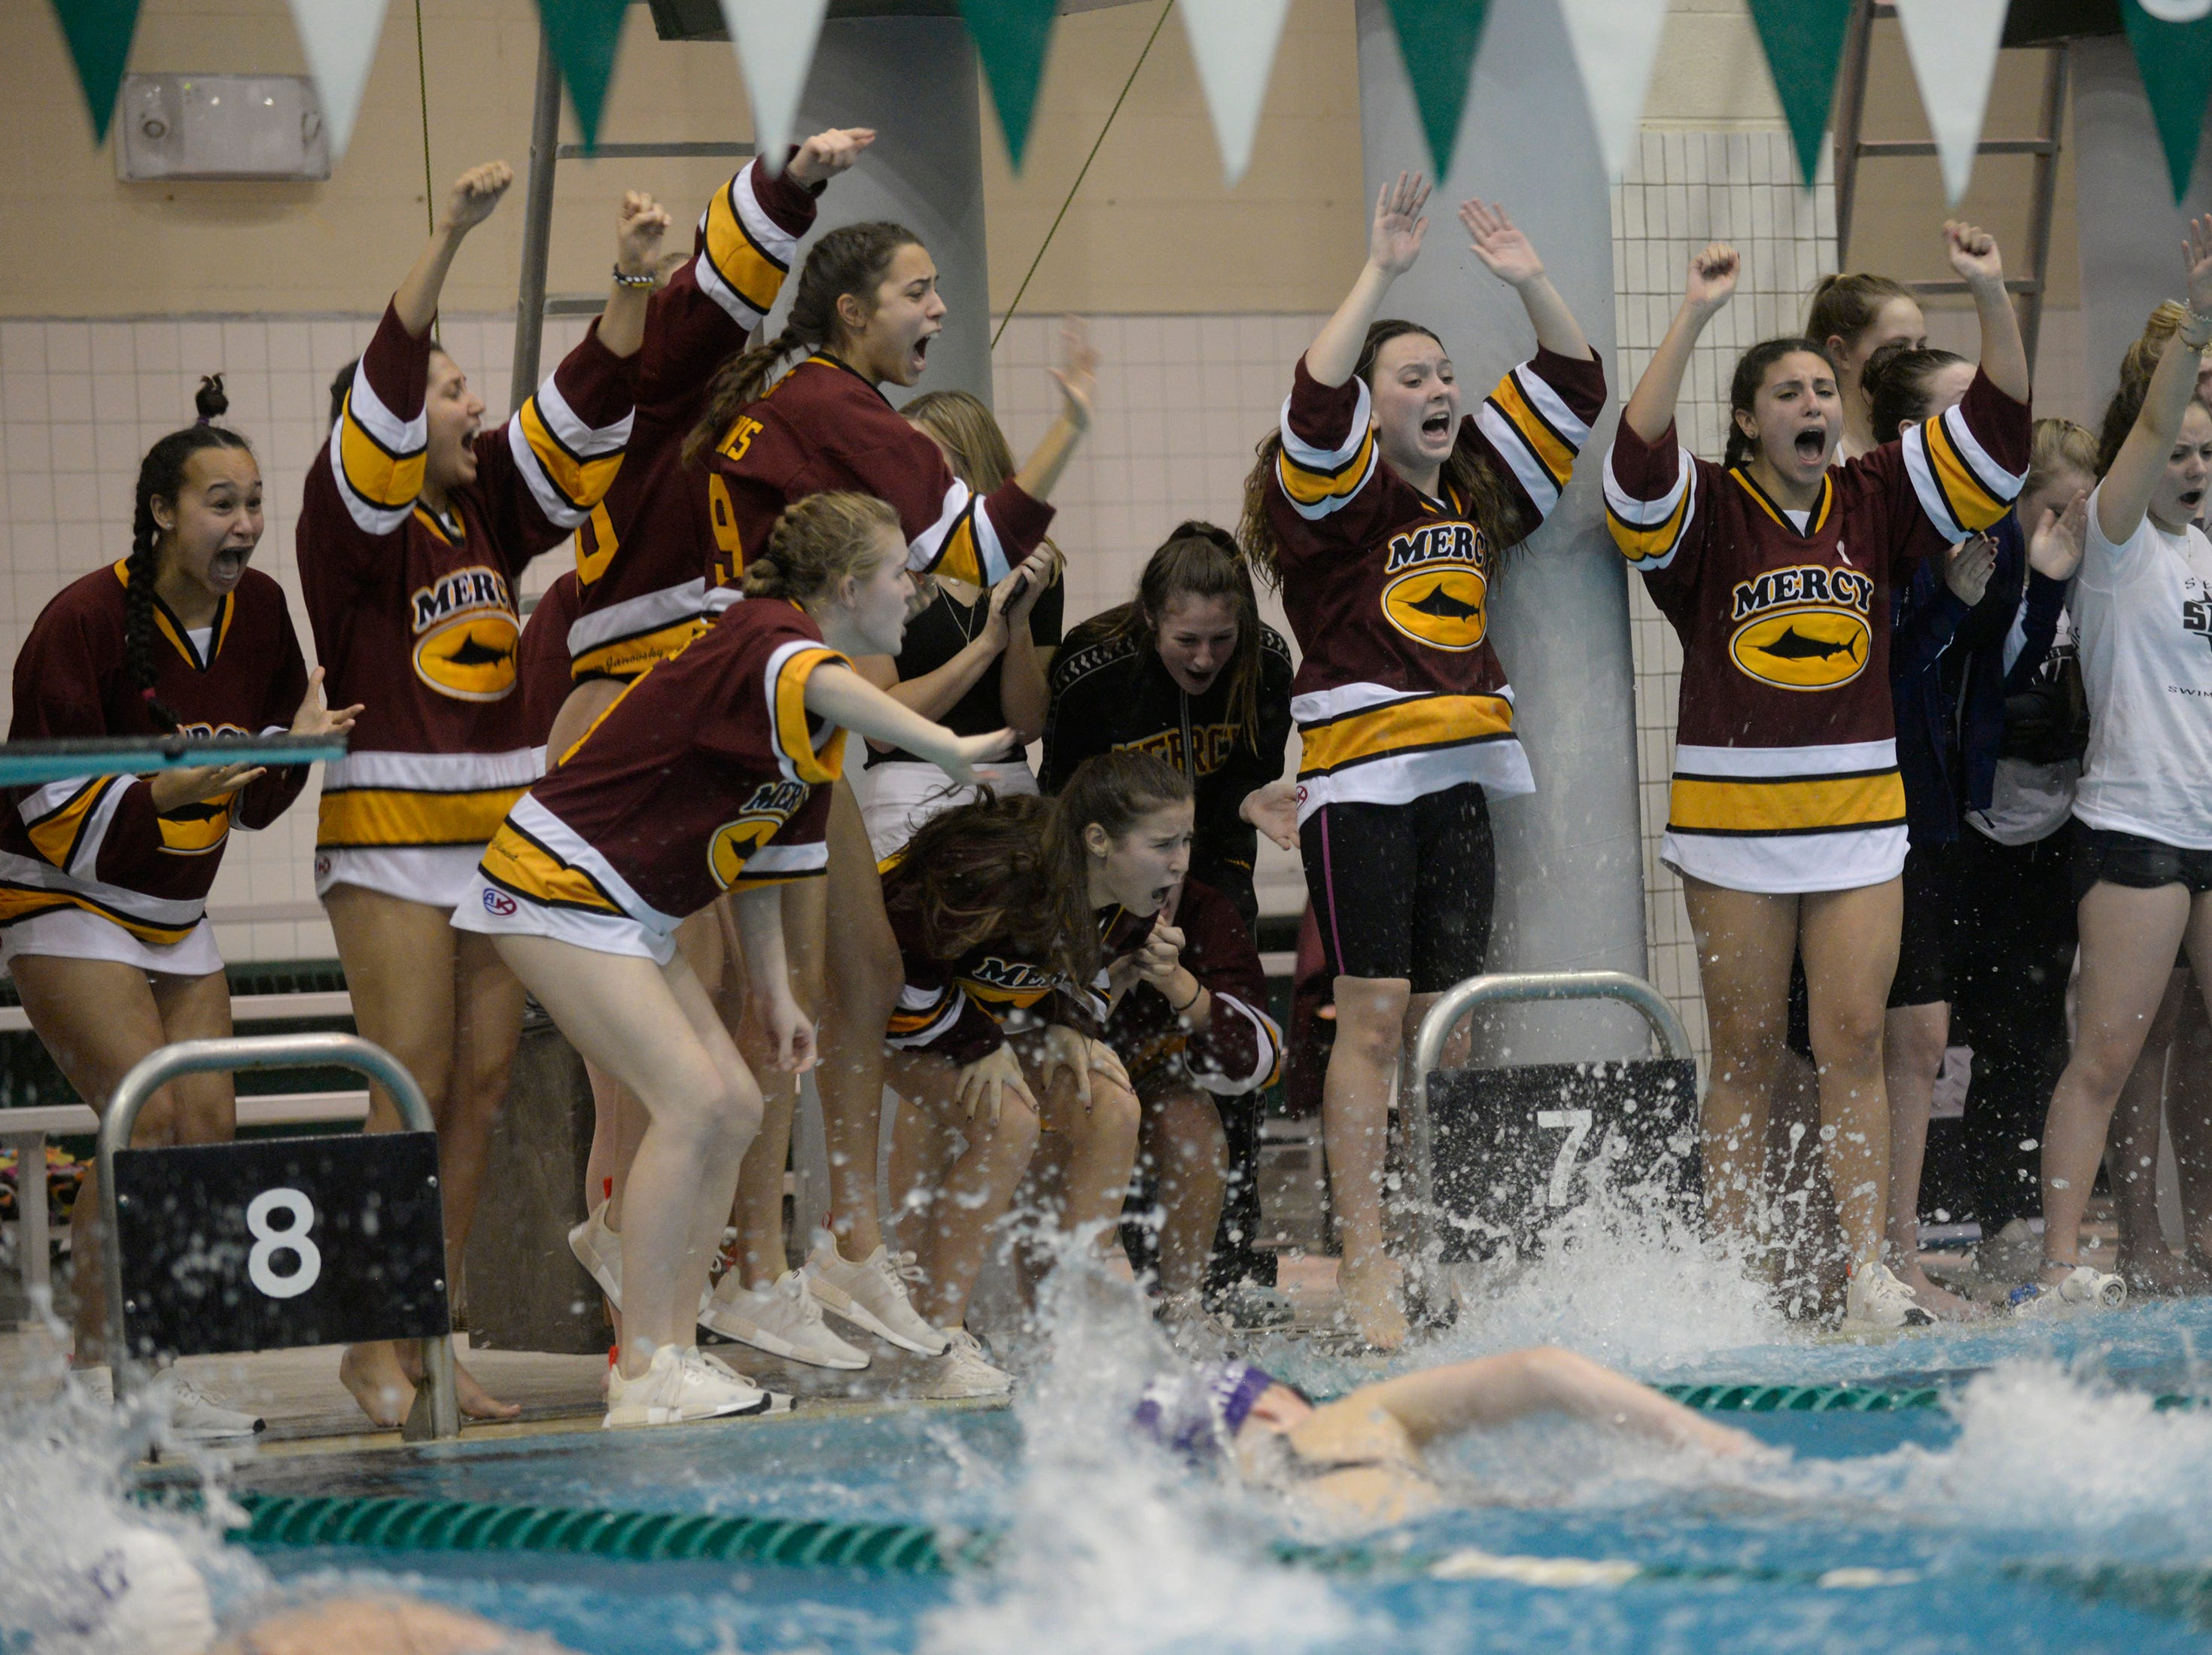 Mercy swimmers cheer on the 400 yard freestyle team at the Division 1 girls swimming and diving championships held at Eastern Michigan University Nov. 17, 2018.